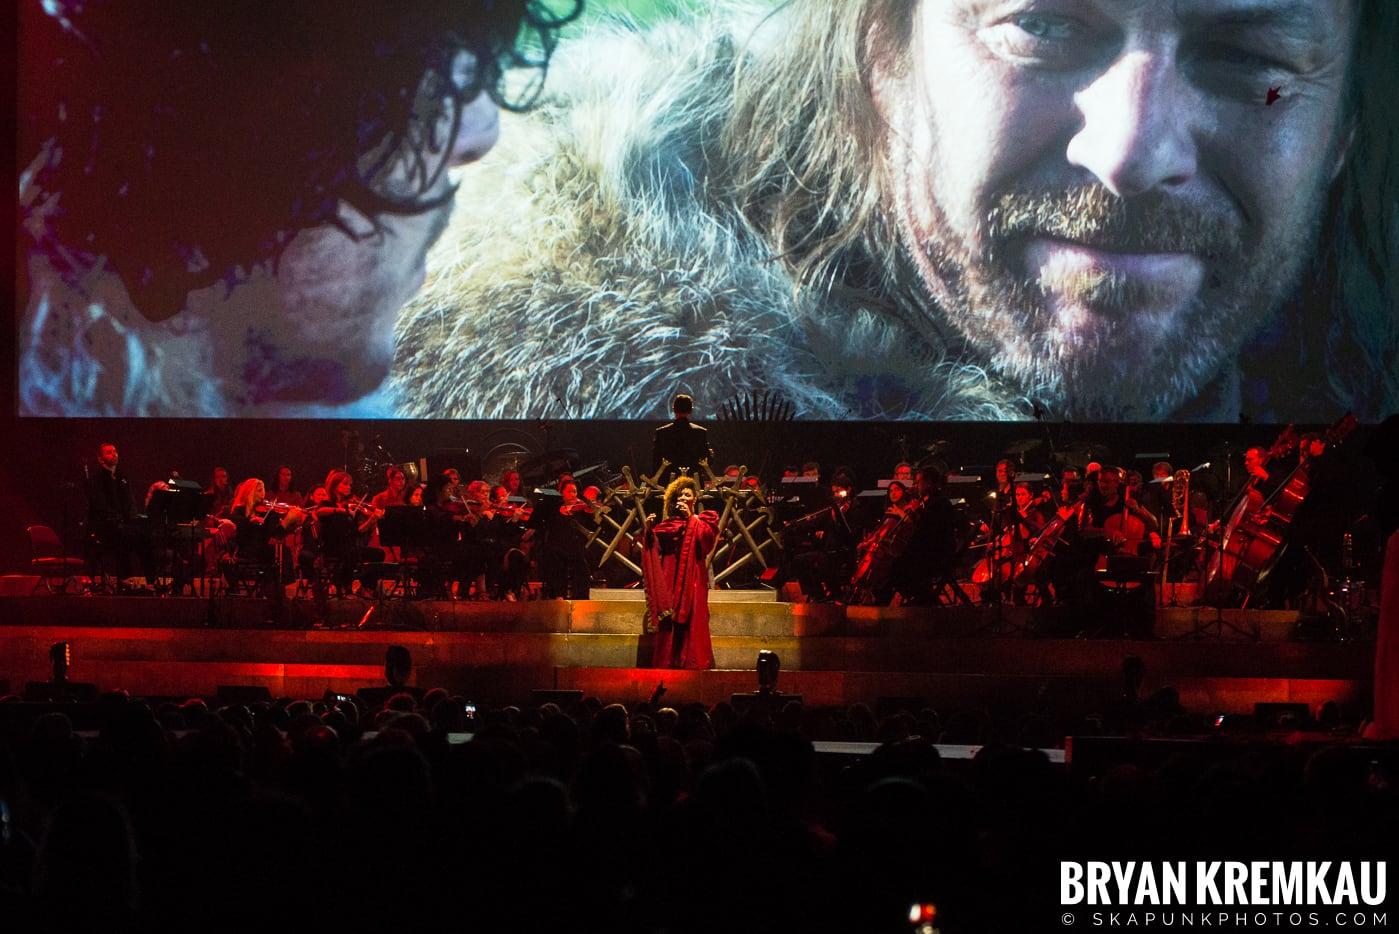 Game of Thrones Live Experience @ Prudential Center, Newark, NJ - 9.26.18 (7)